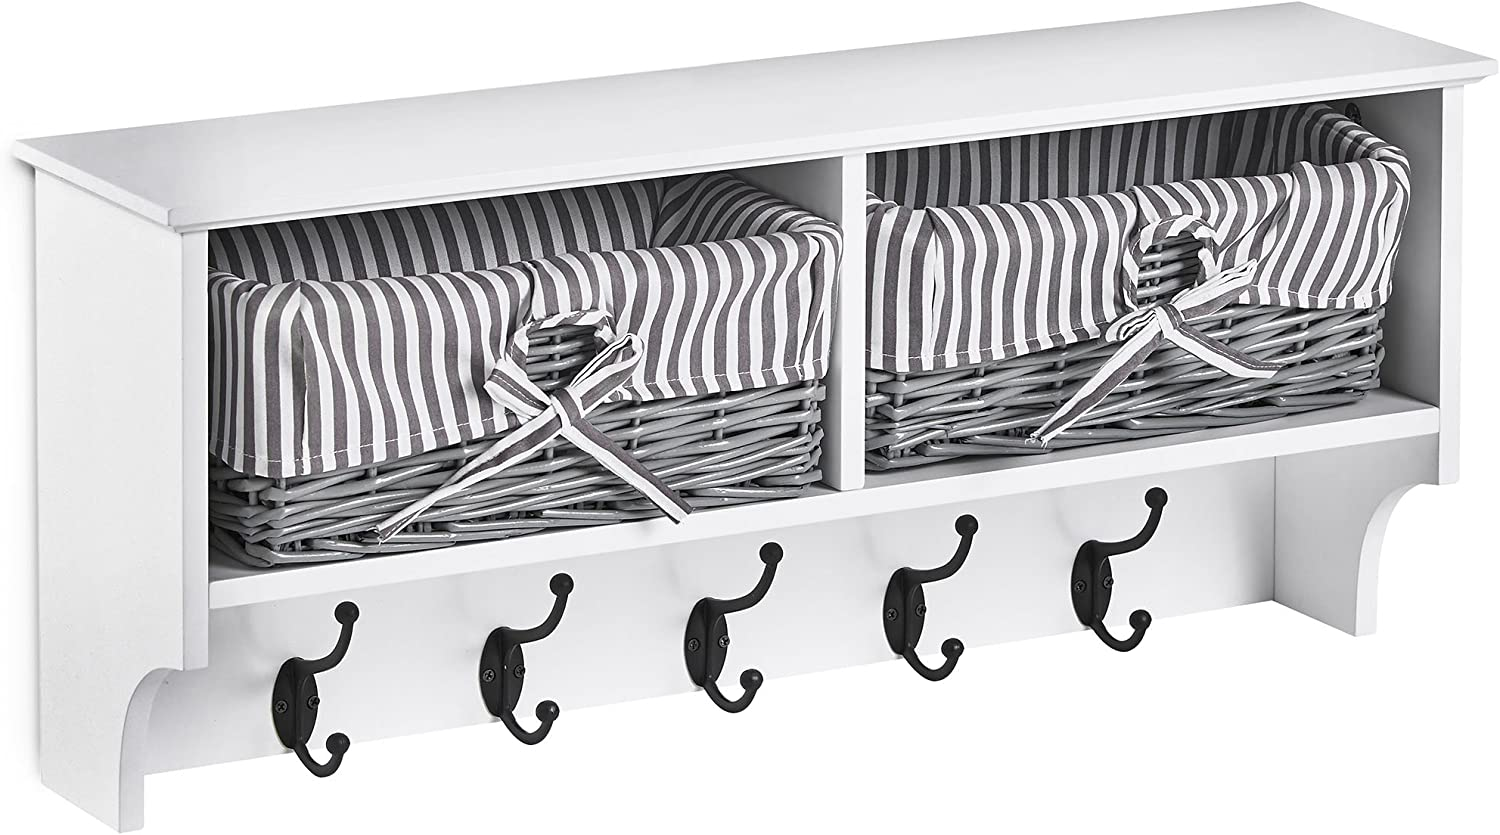 VonHaus Hallway Hanging Coat Hooks & Storage Unit - Contemporary White & Grey Wooden Hall Furniture with Wicker Storage Baskets